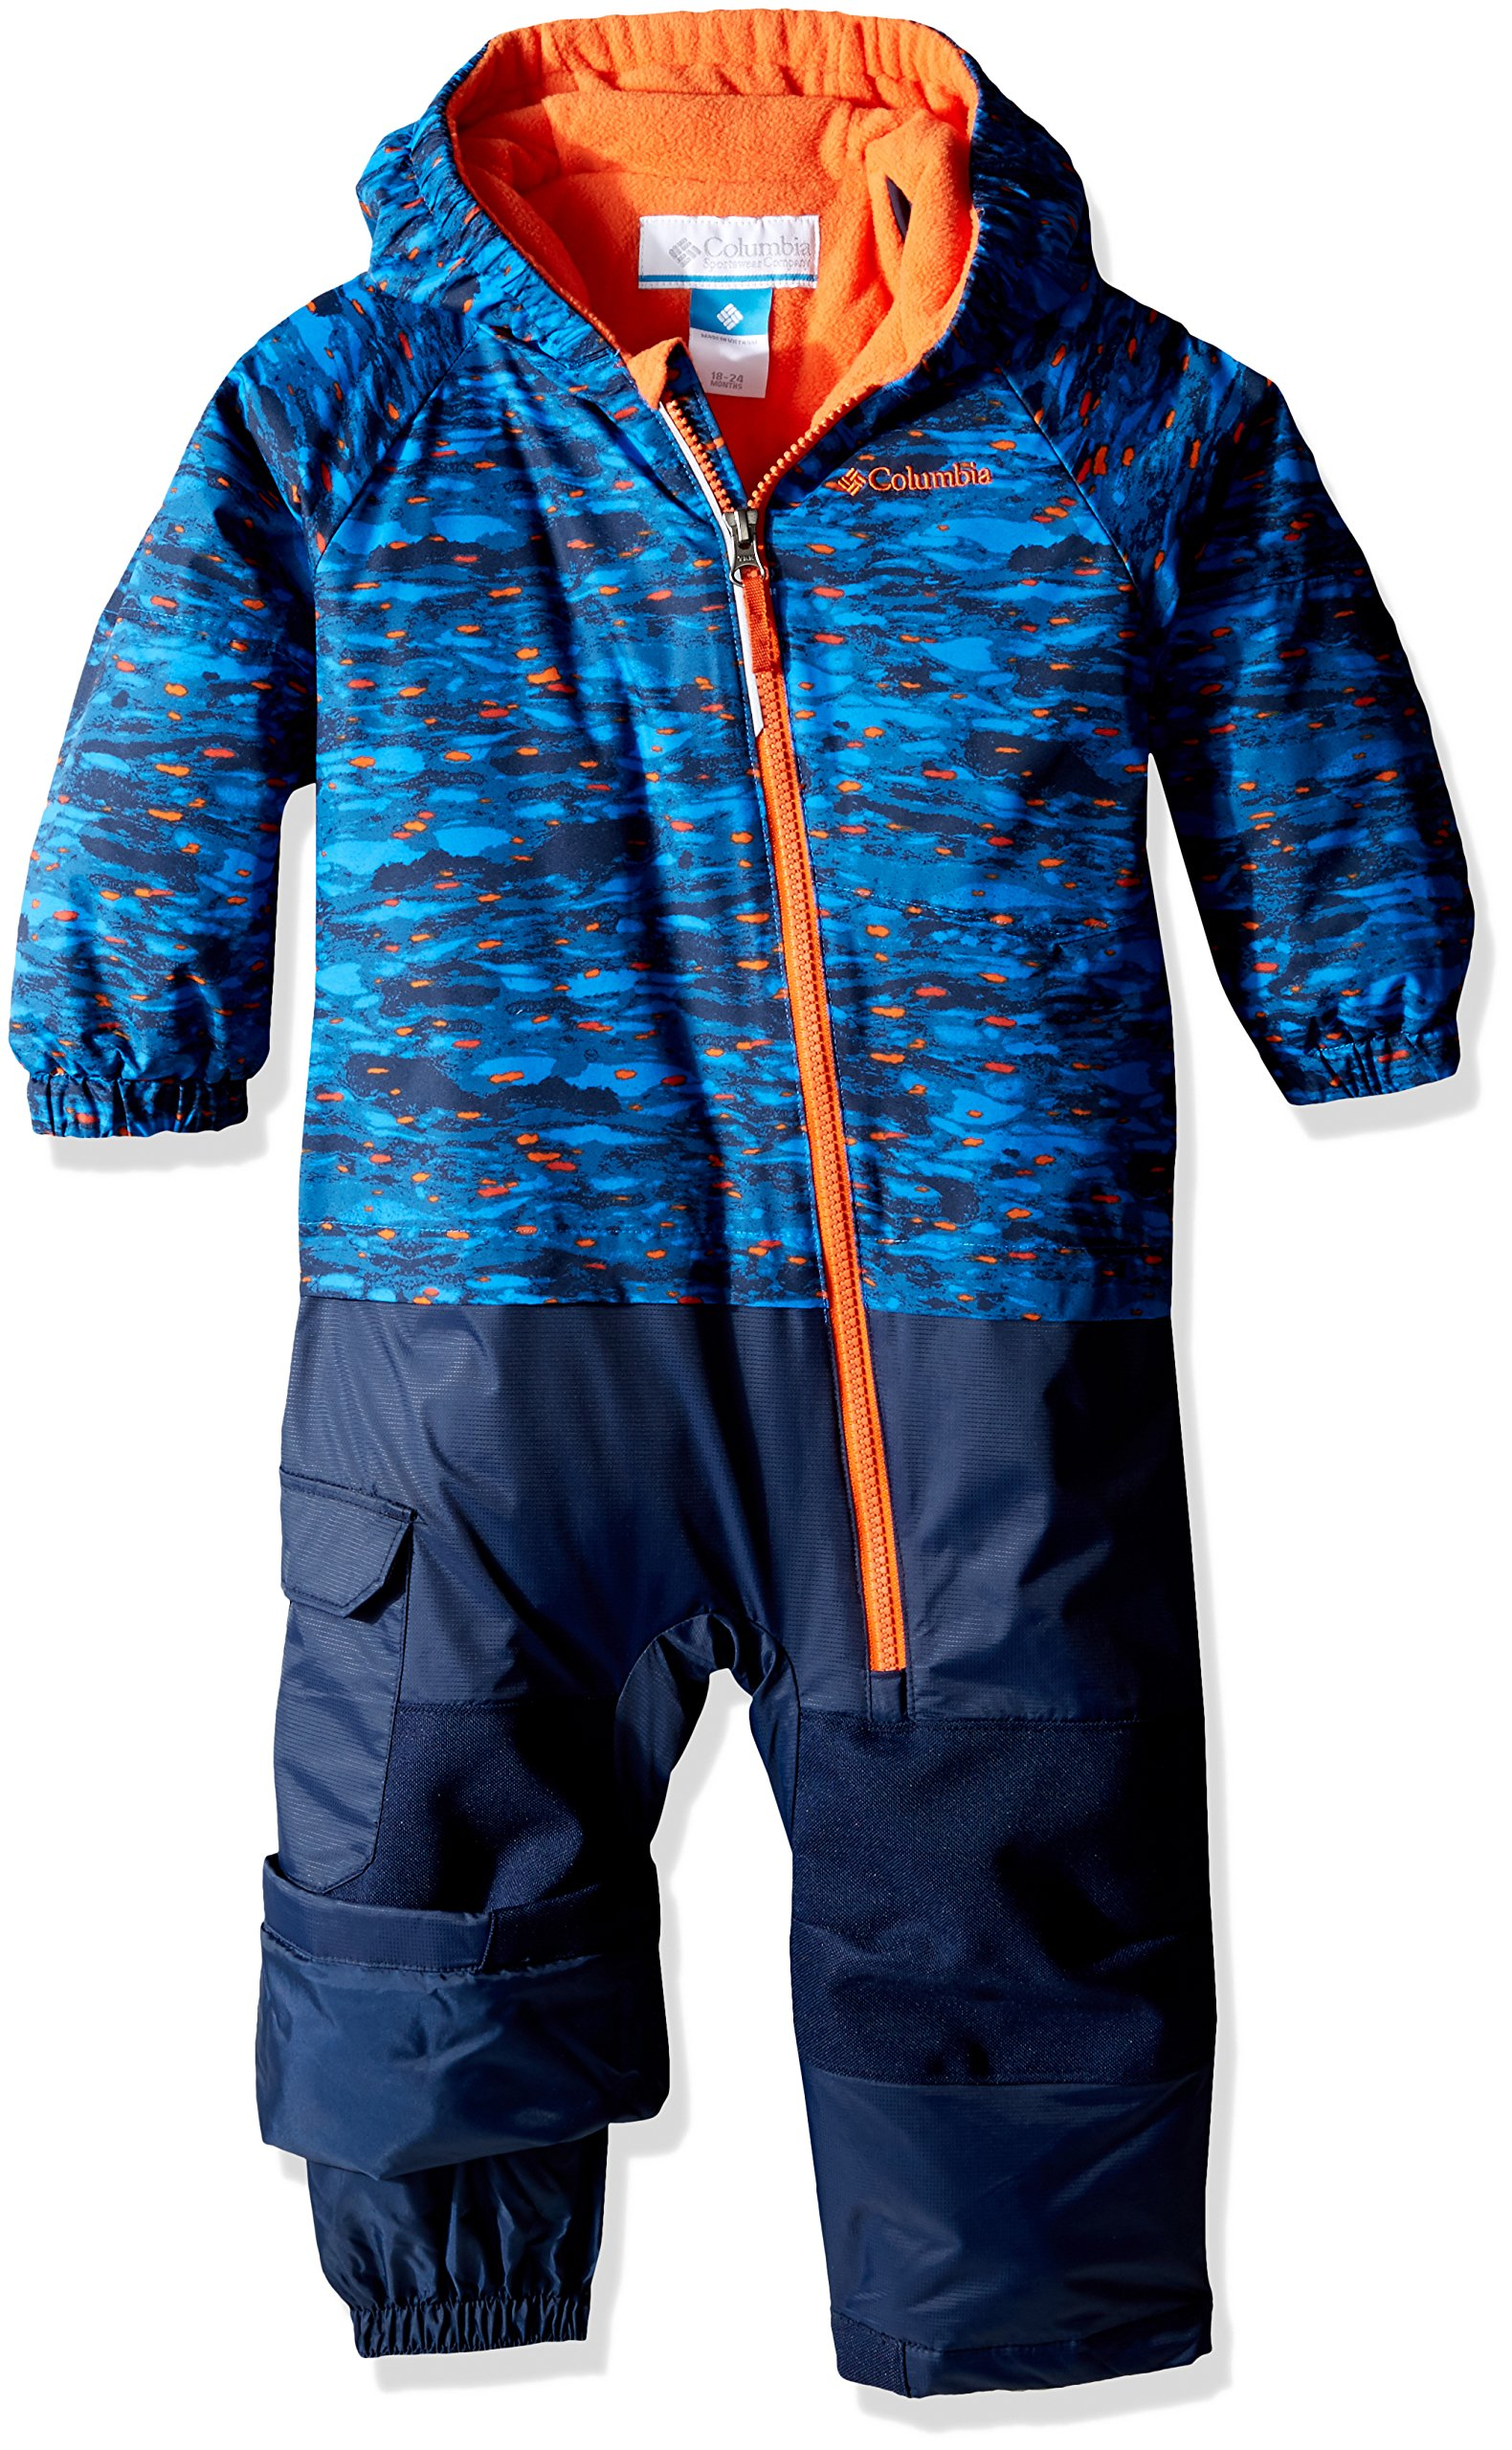 Columbia Baby Little Dude Suit, Super Blue Print, 6-12 Months